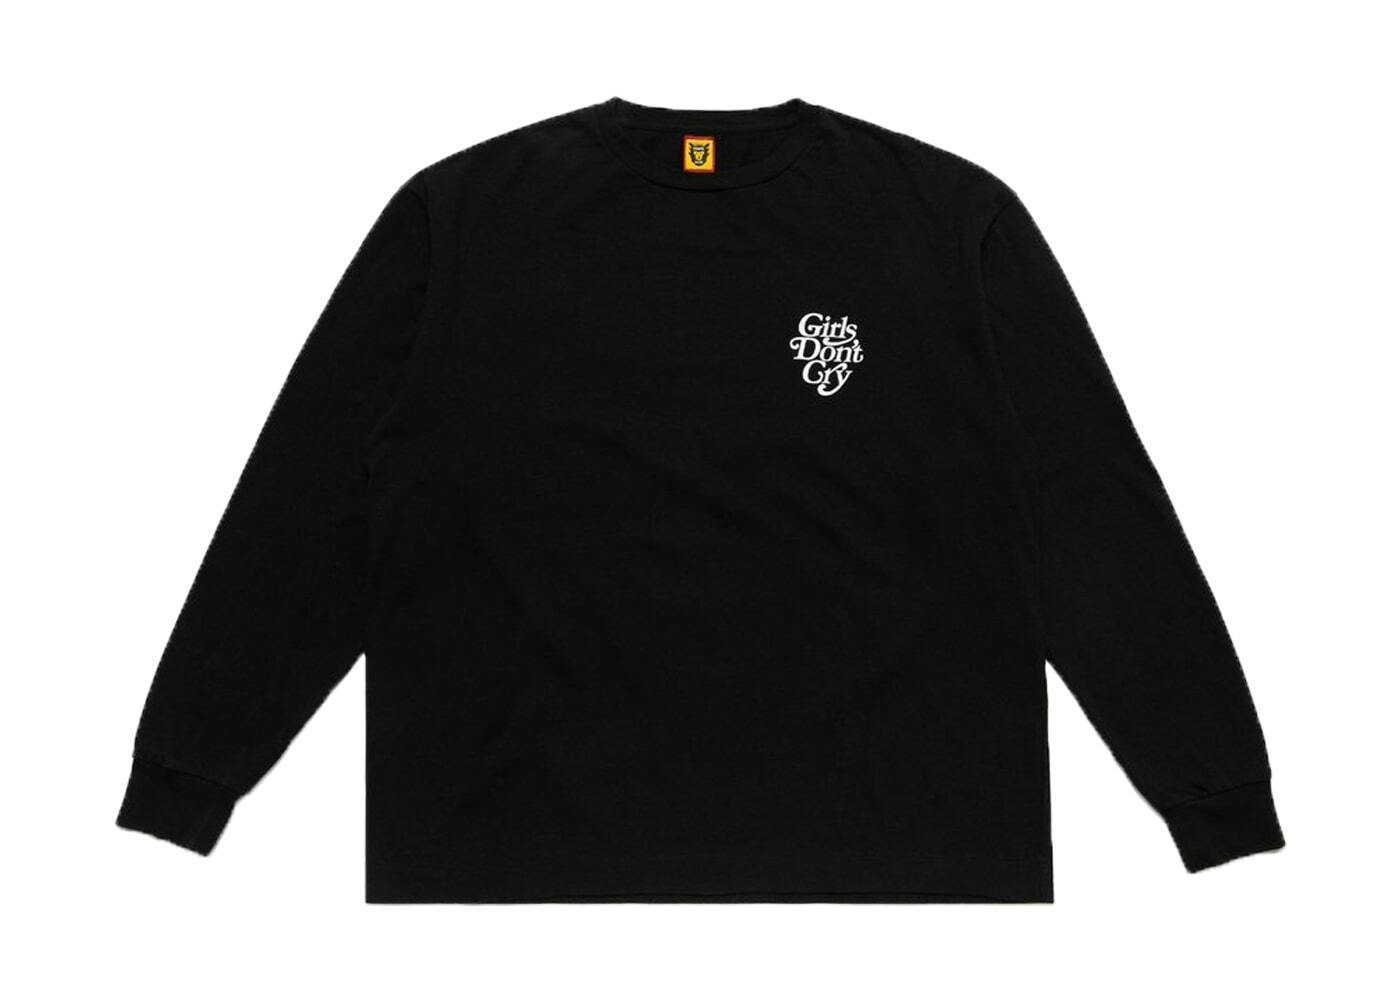 Girls Don't Cry × Human Made L/S Tee Blackの写真